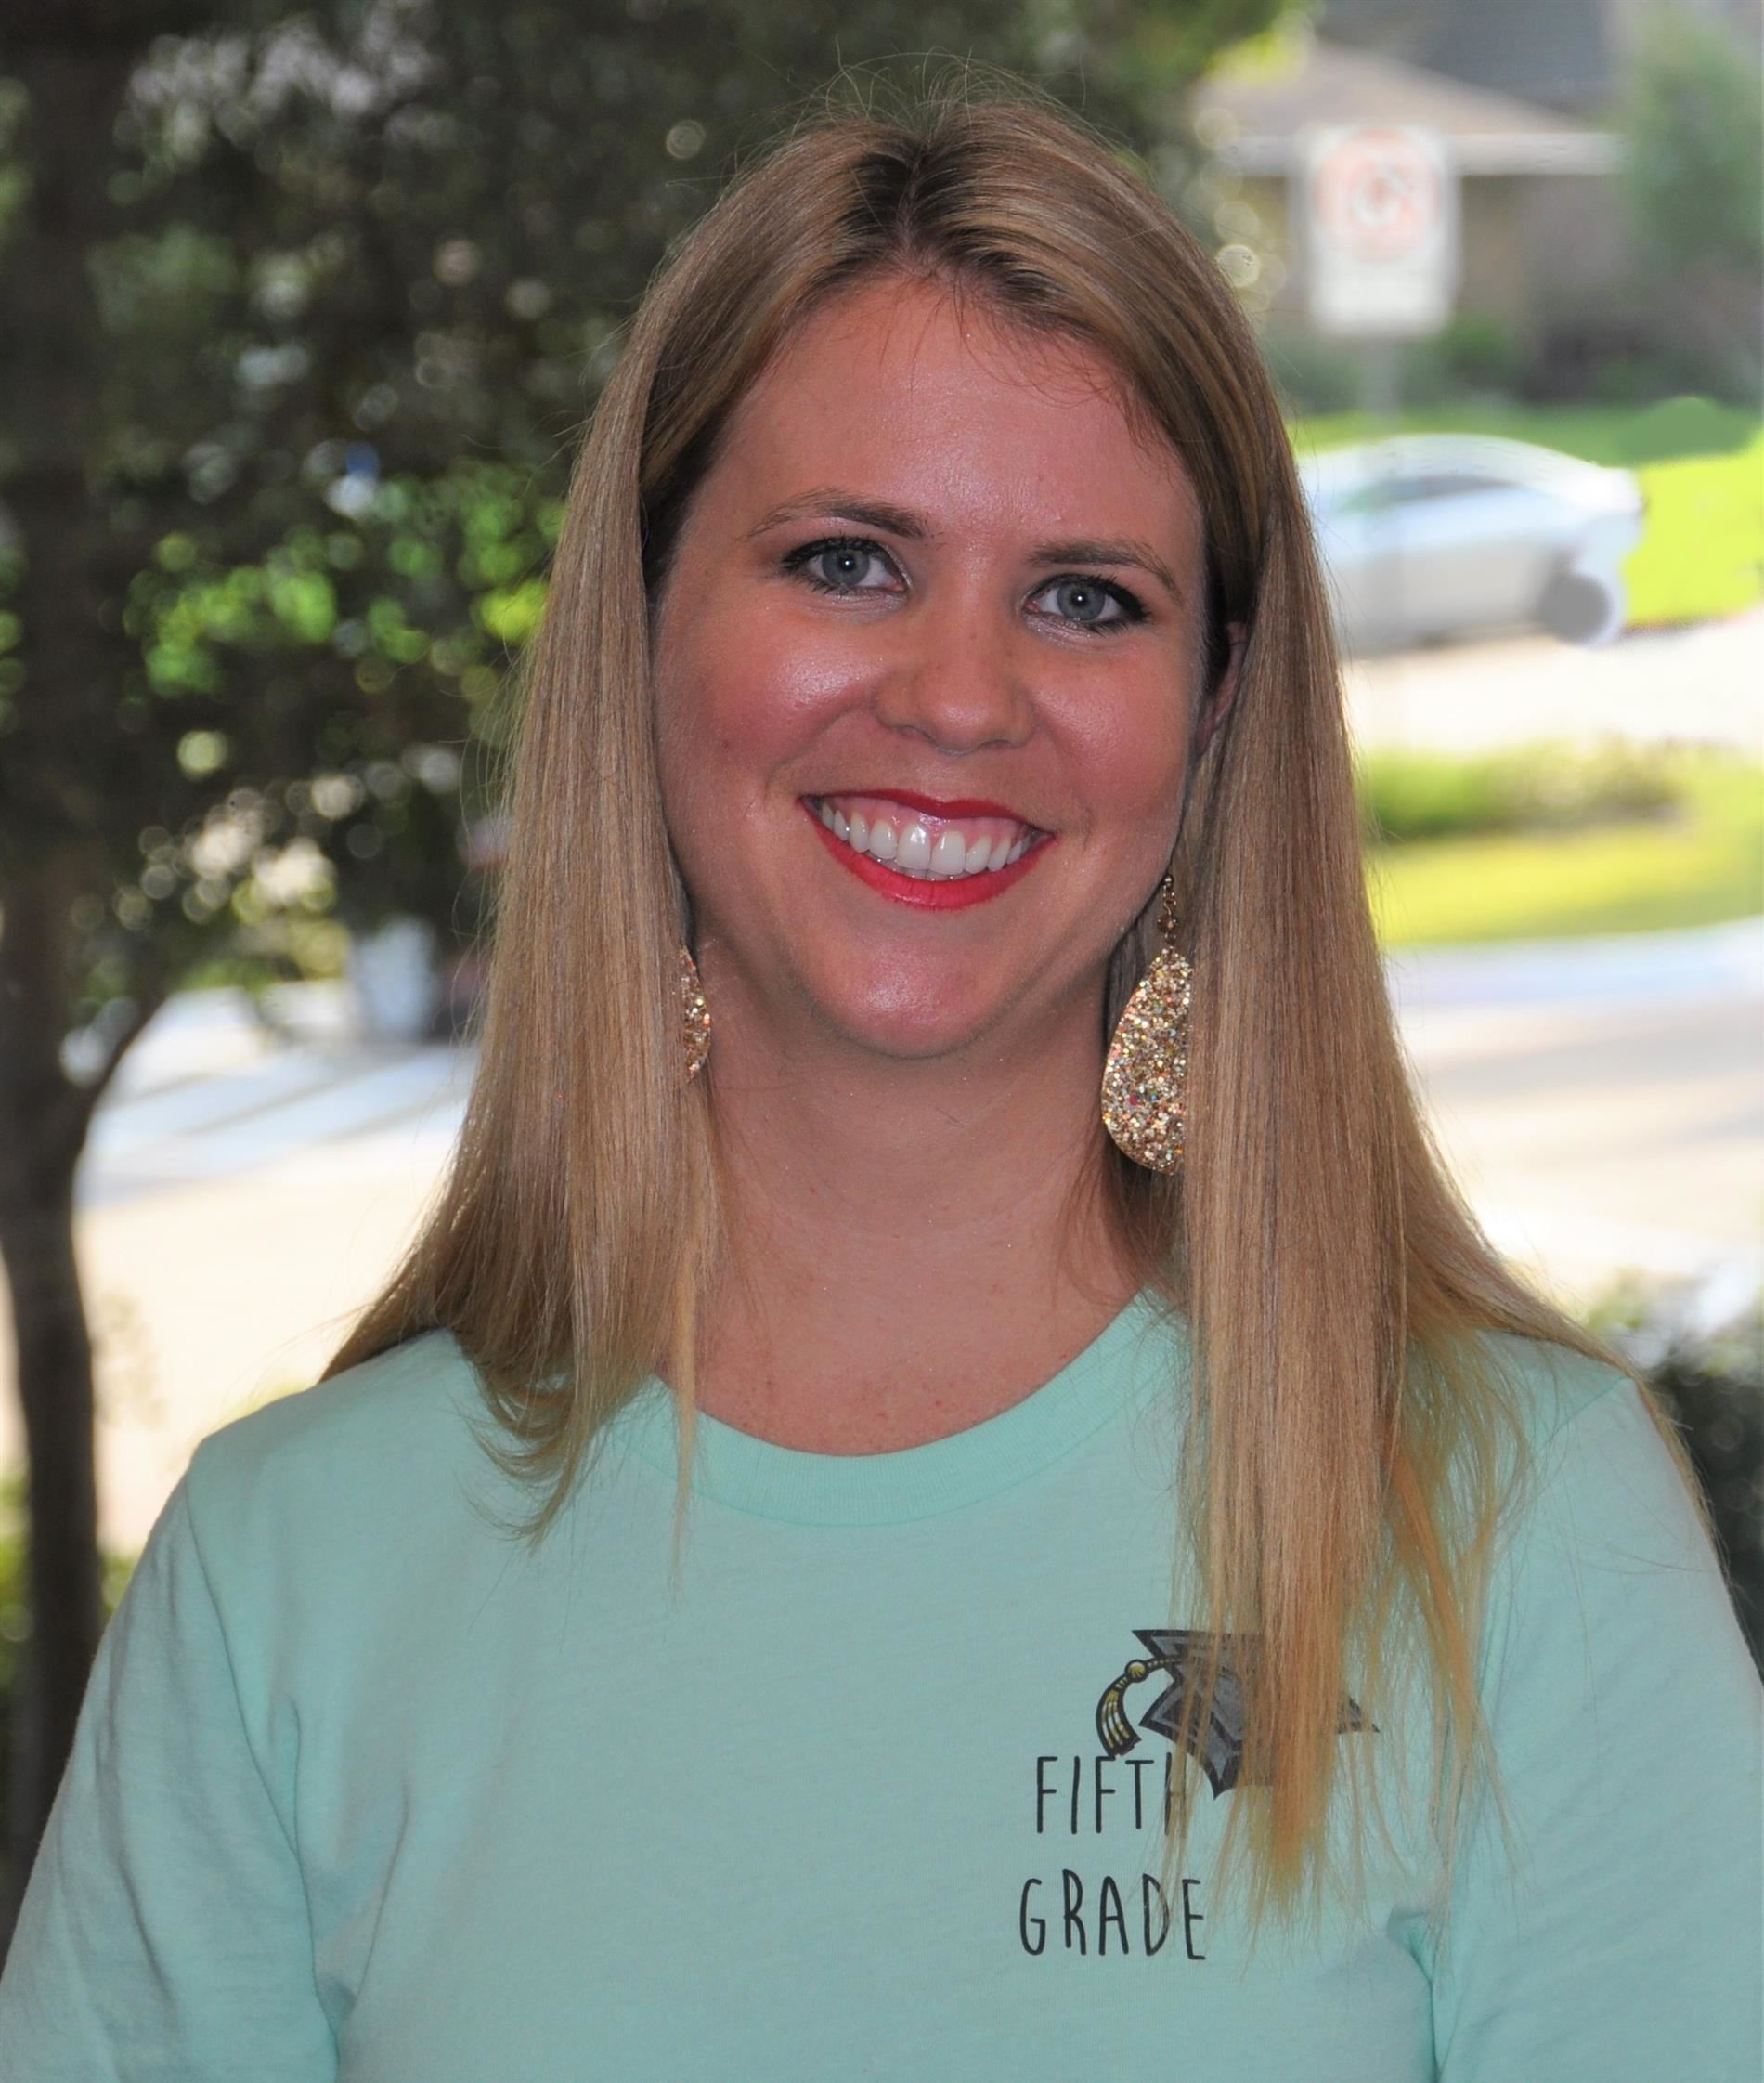 Ashley Dantzler, 5th Grade Team Lead